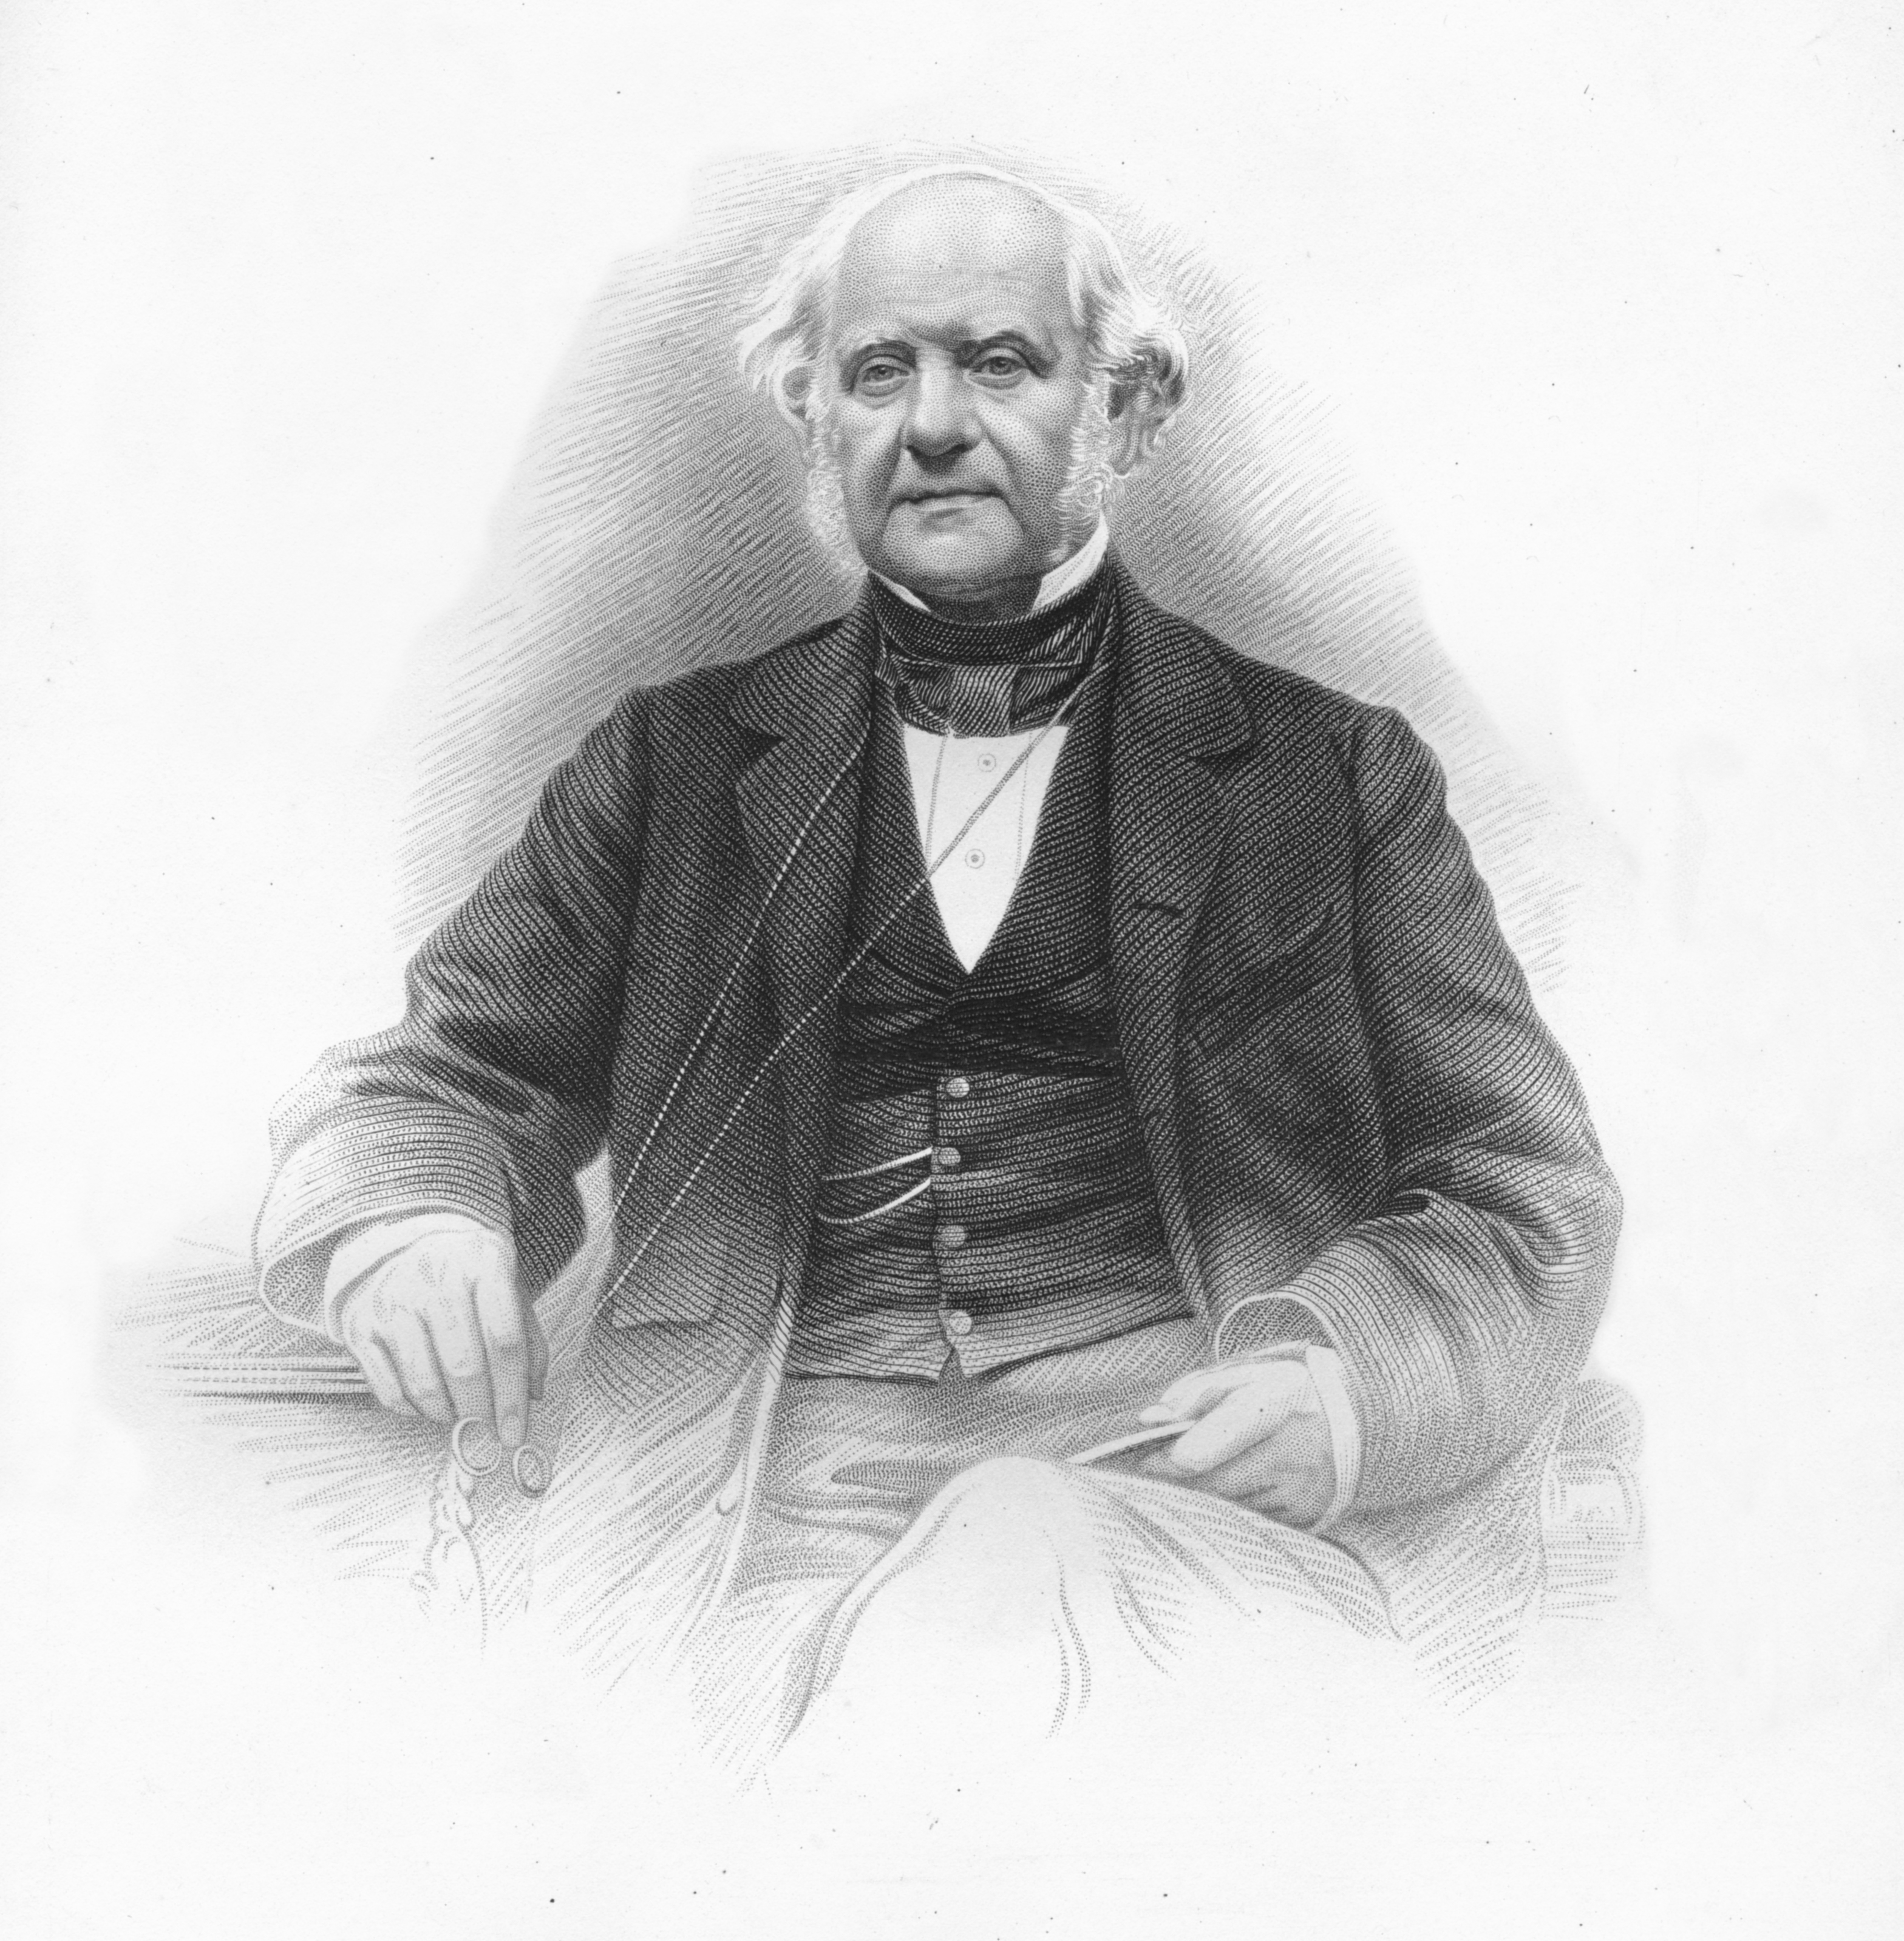 A black and white image of George Peabody, 1859